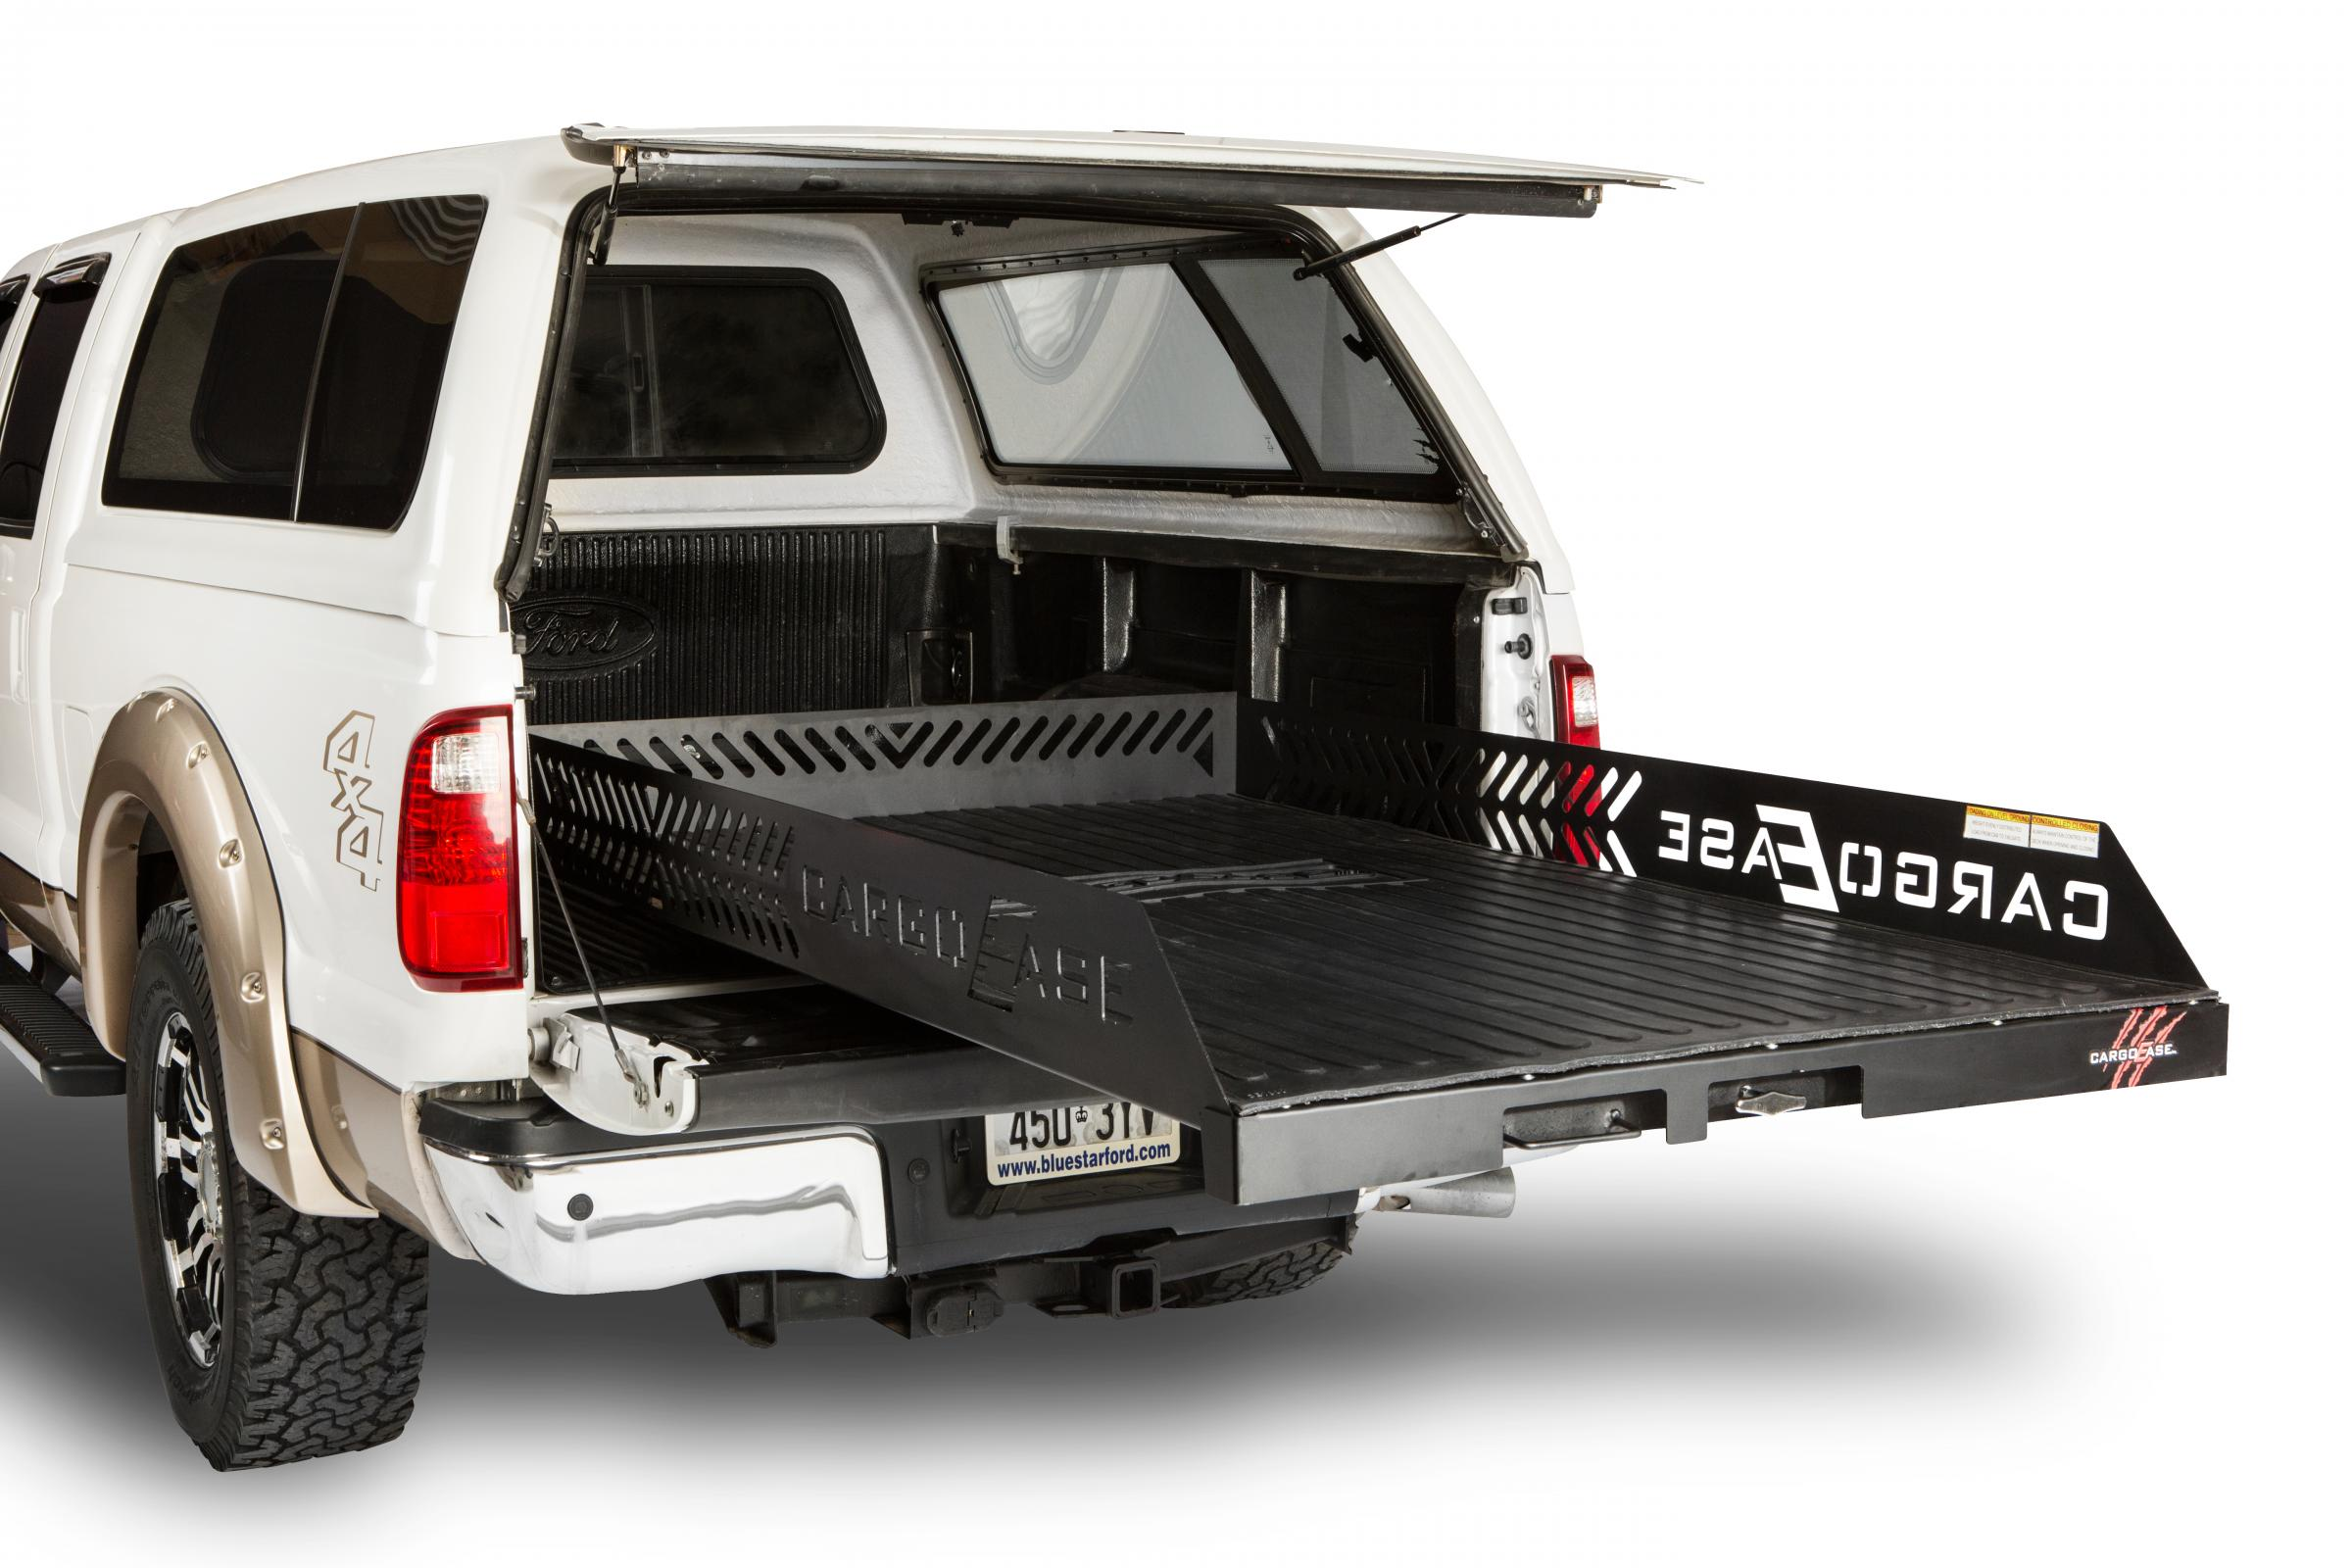 CE7548C3 Cargo Ease Bed Slide 3000 Pound Capacity